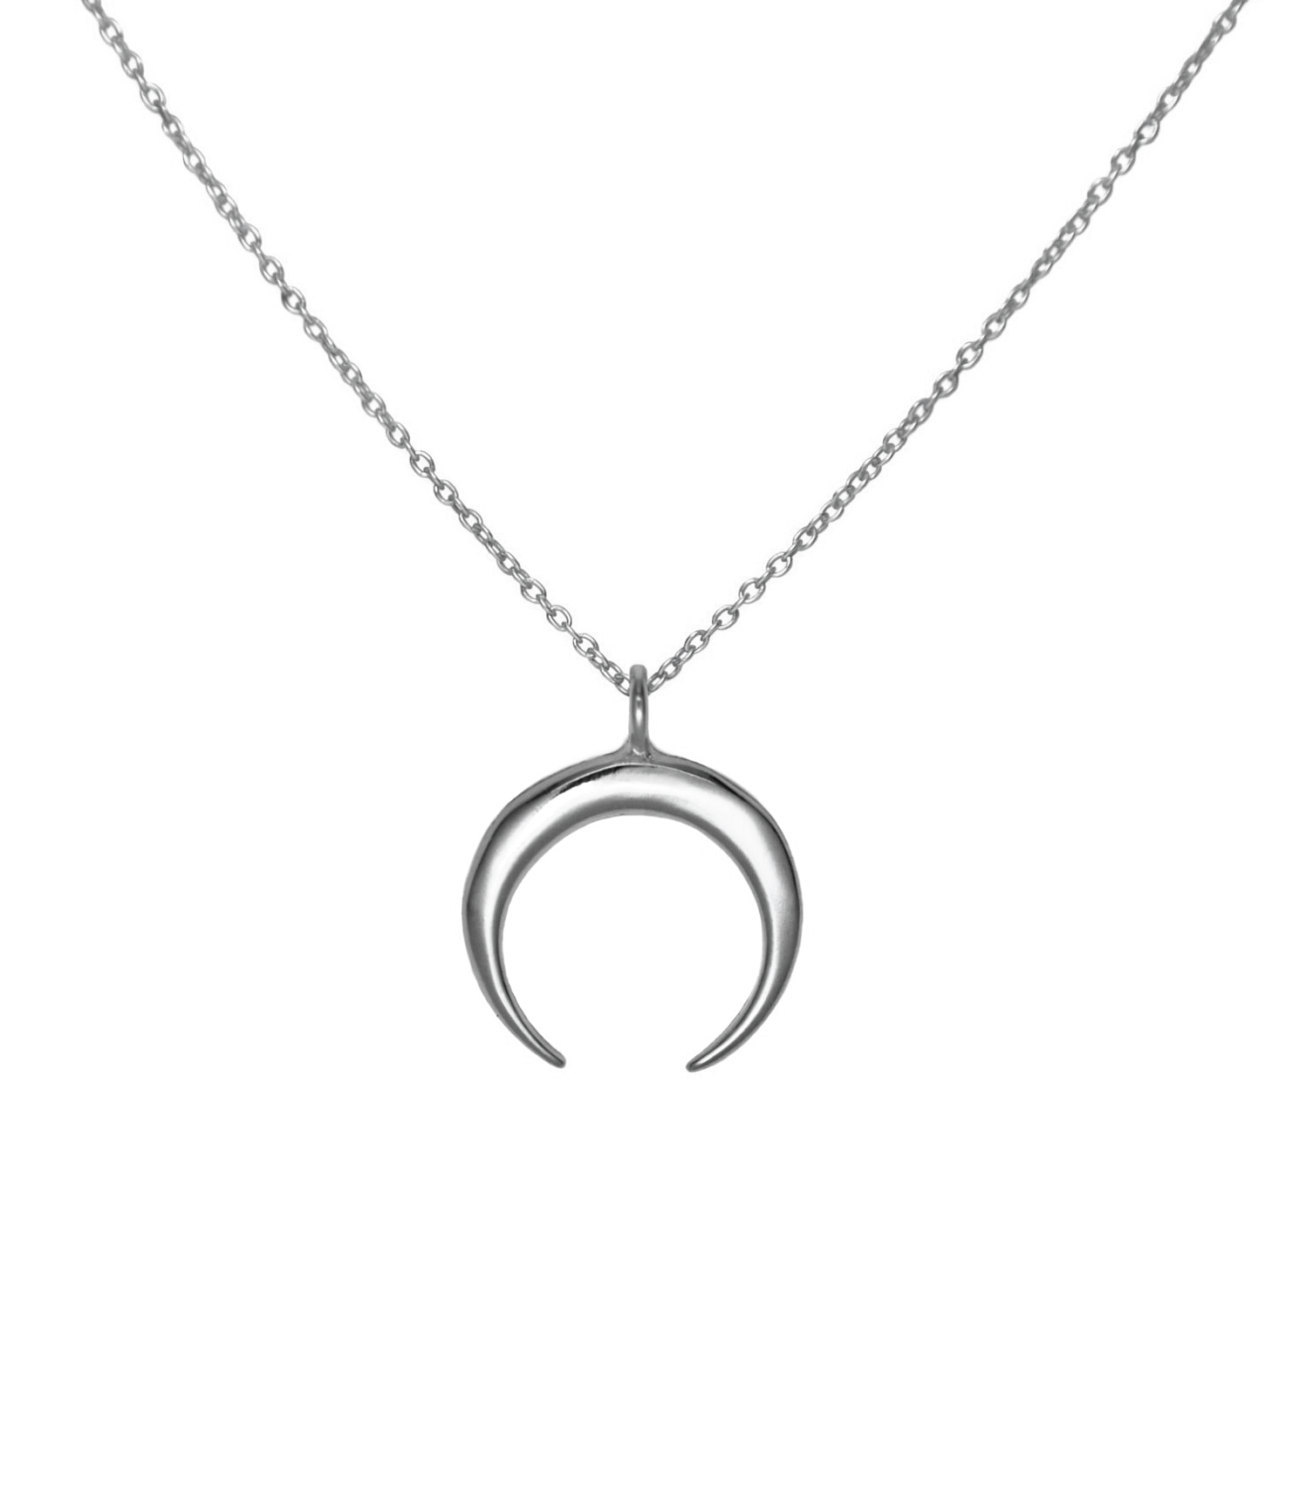 Crescent Moon Necklace, Solid 925 Sterling Silver Double Horn Pendant Necklace